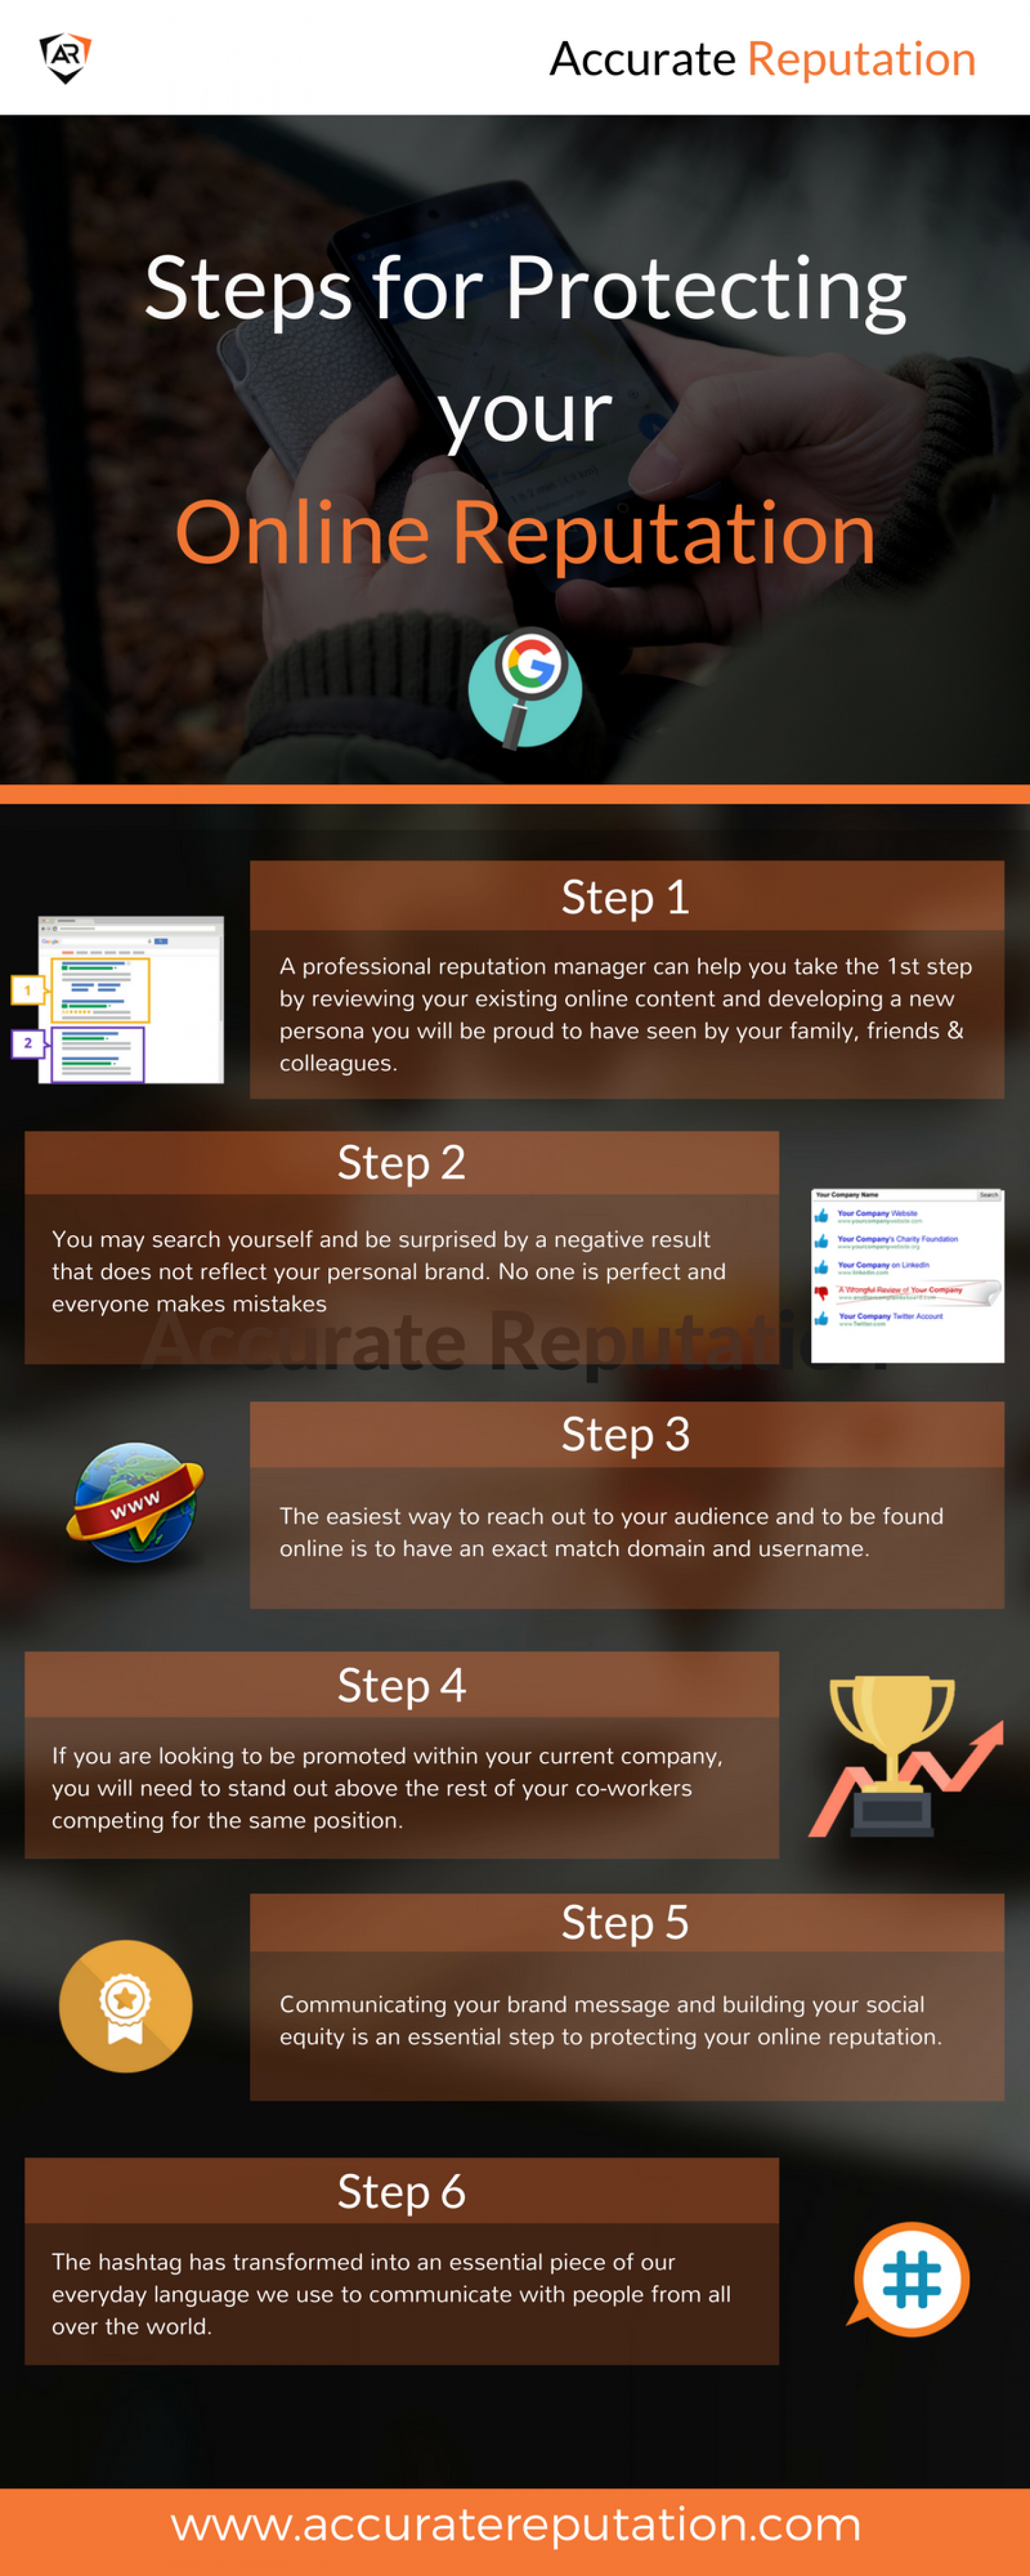 Accurate Reputation - Steps for Protecting your Online Reputation Infographic